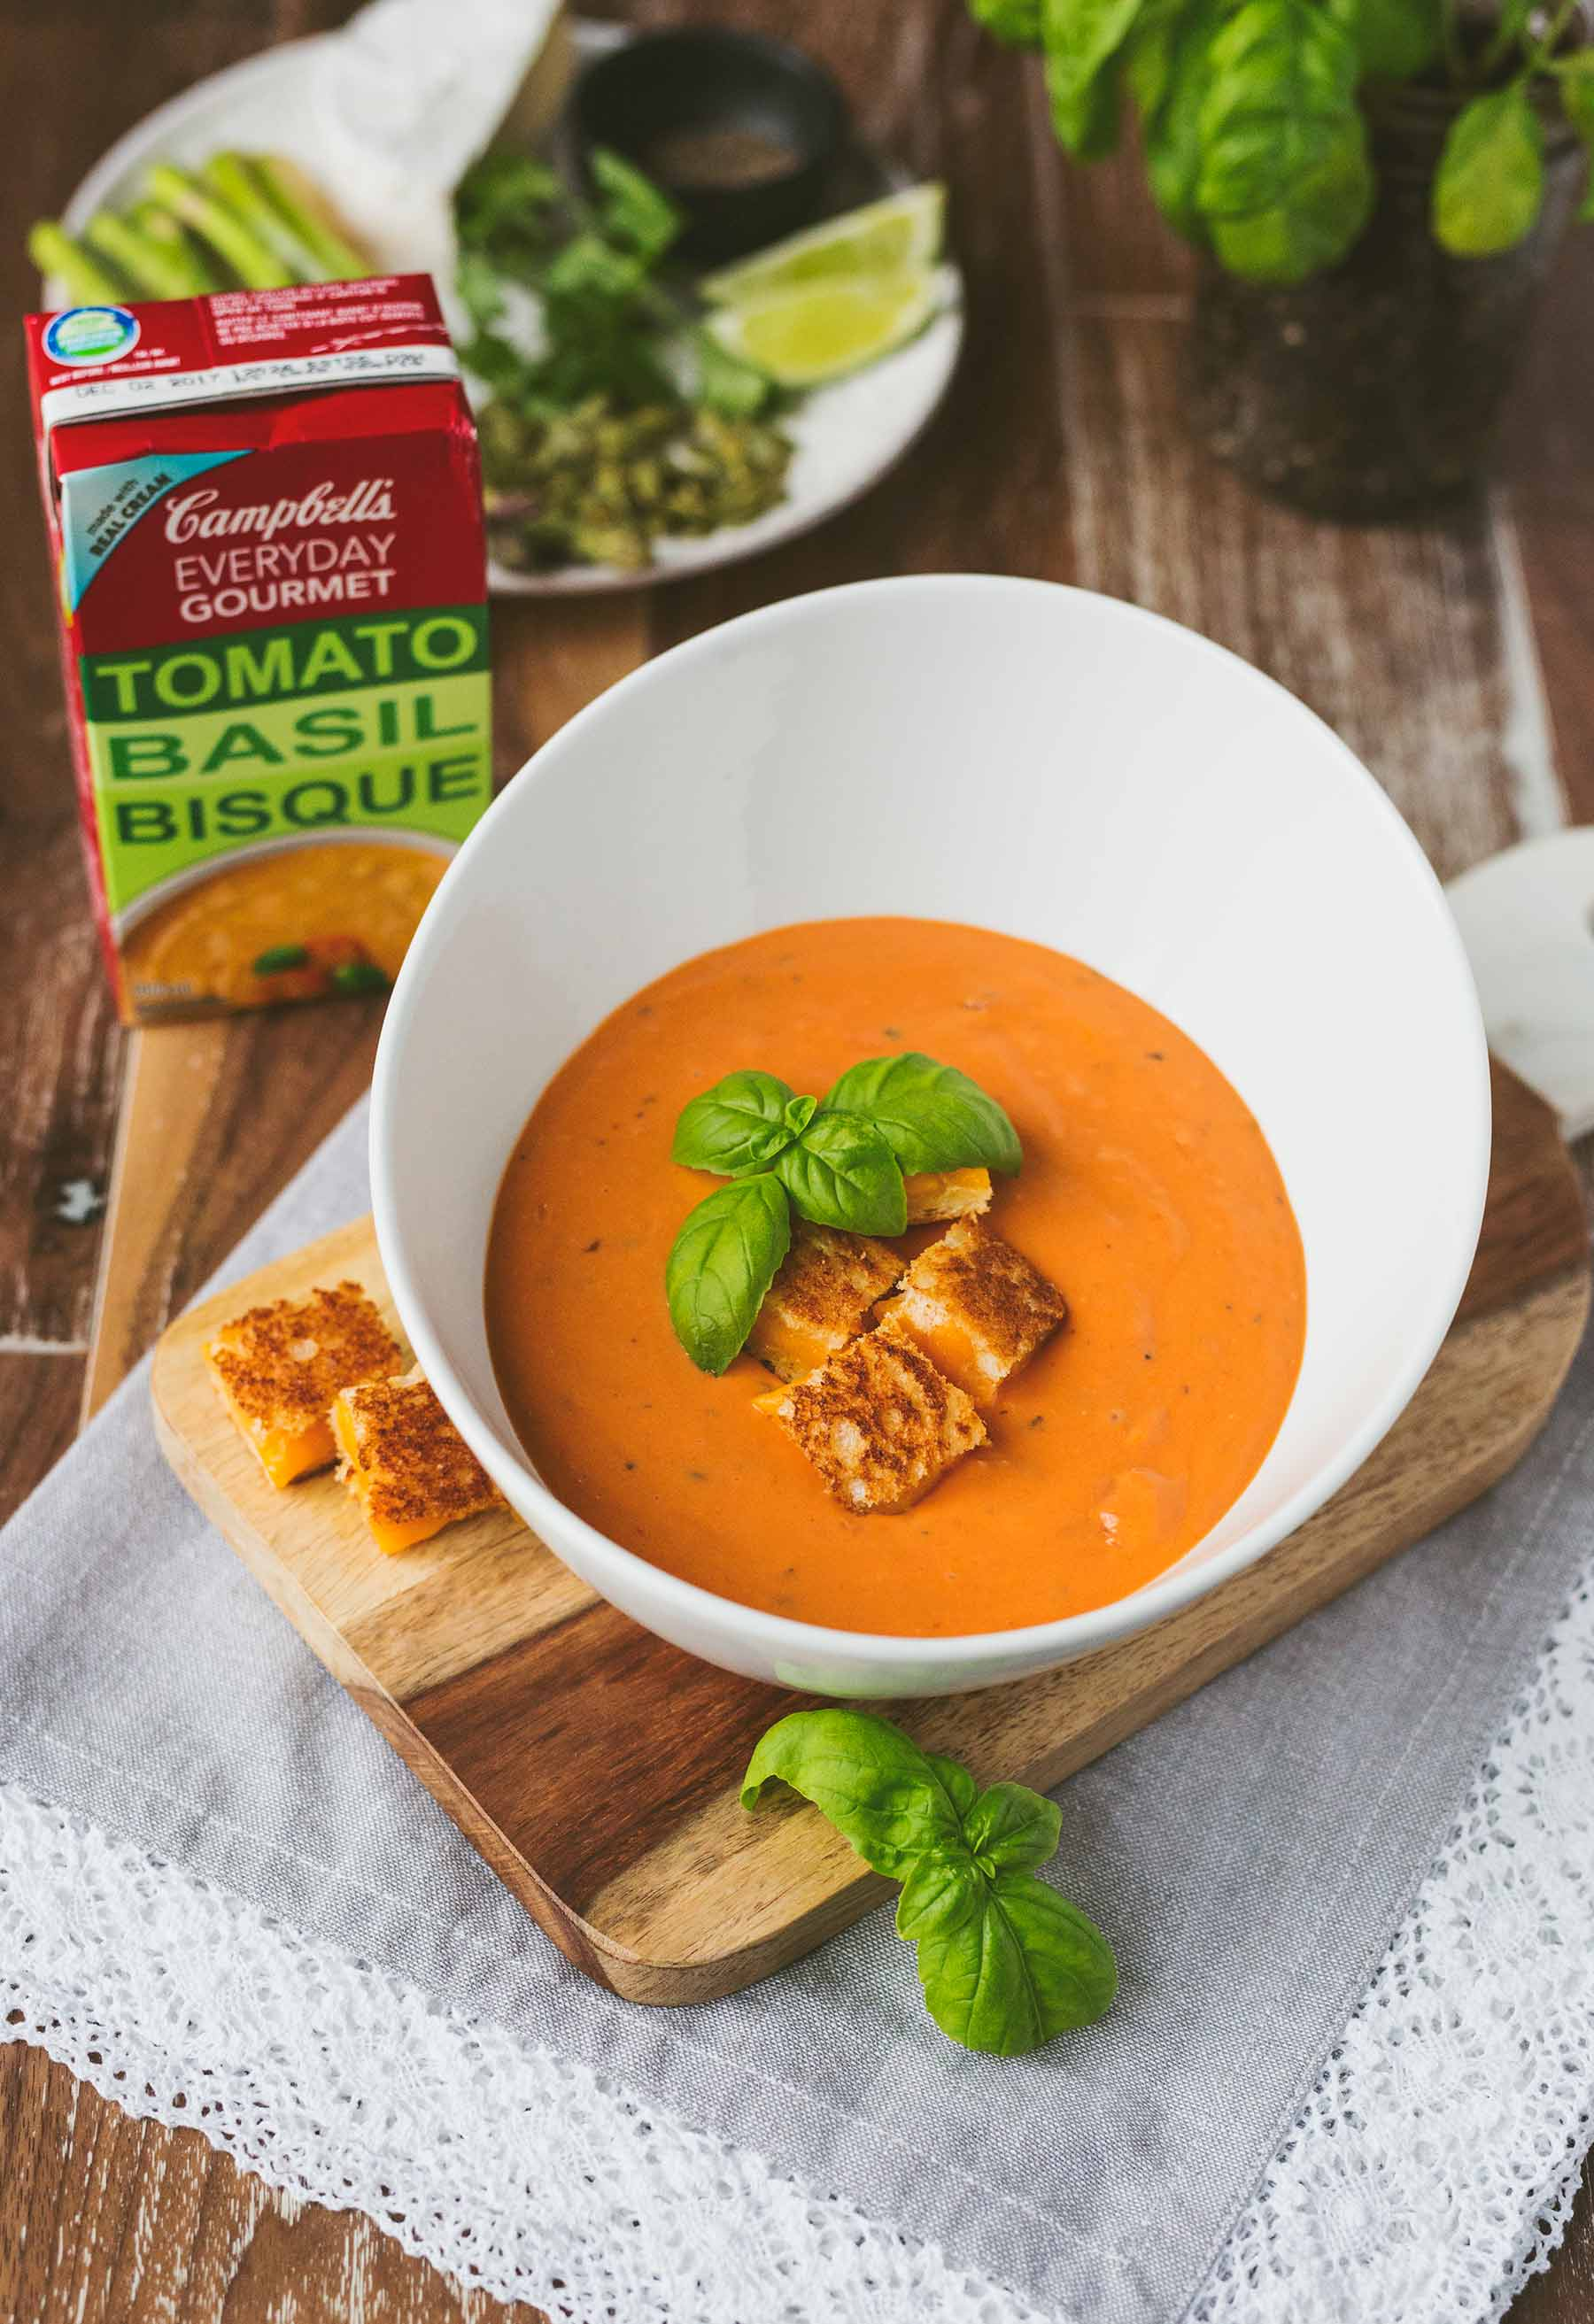 Campbell's Everyday Gourmet Tomato Basil Bisque